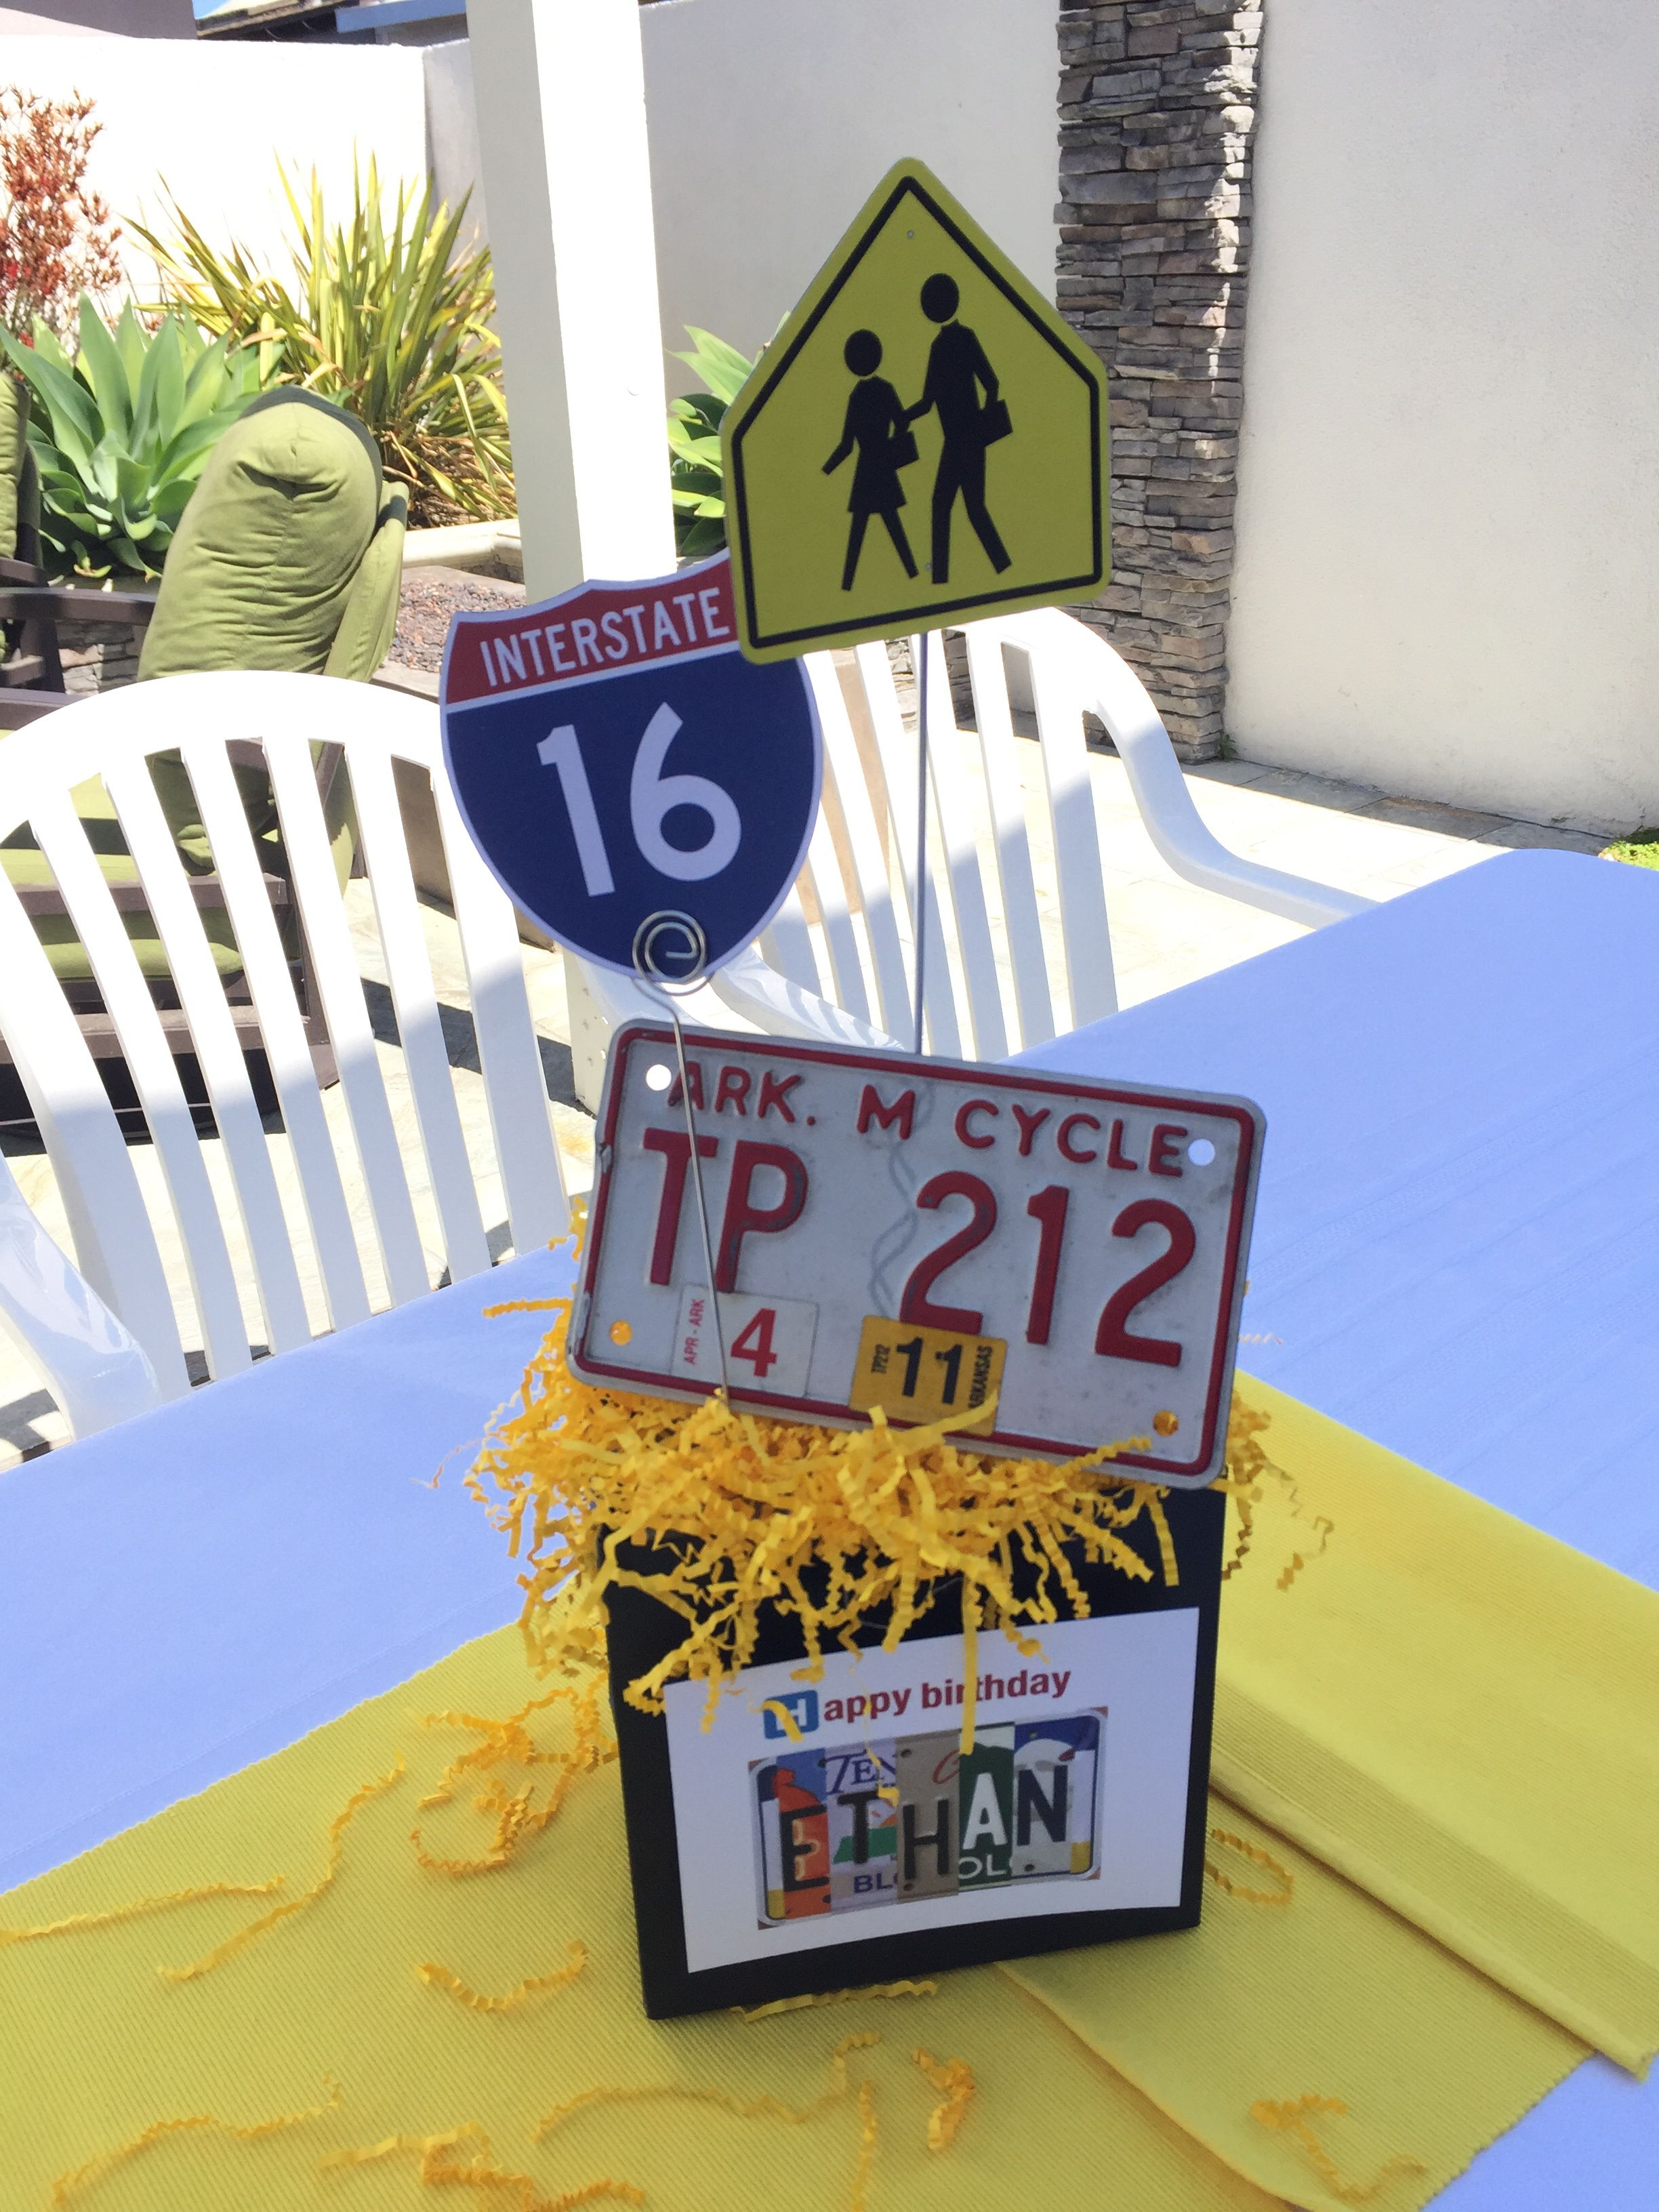 16TH Birthday Party With Road Trip Theme Motorcycle License Plates From Across The US Add Authenticity Downloaded Signs Printed And Mounted To Metal